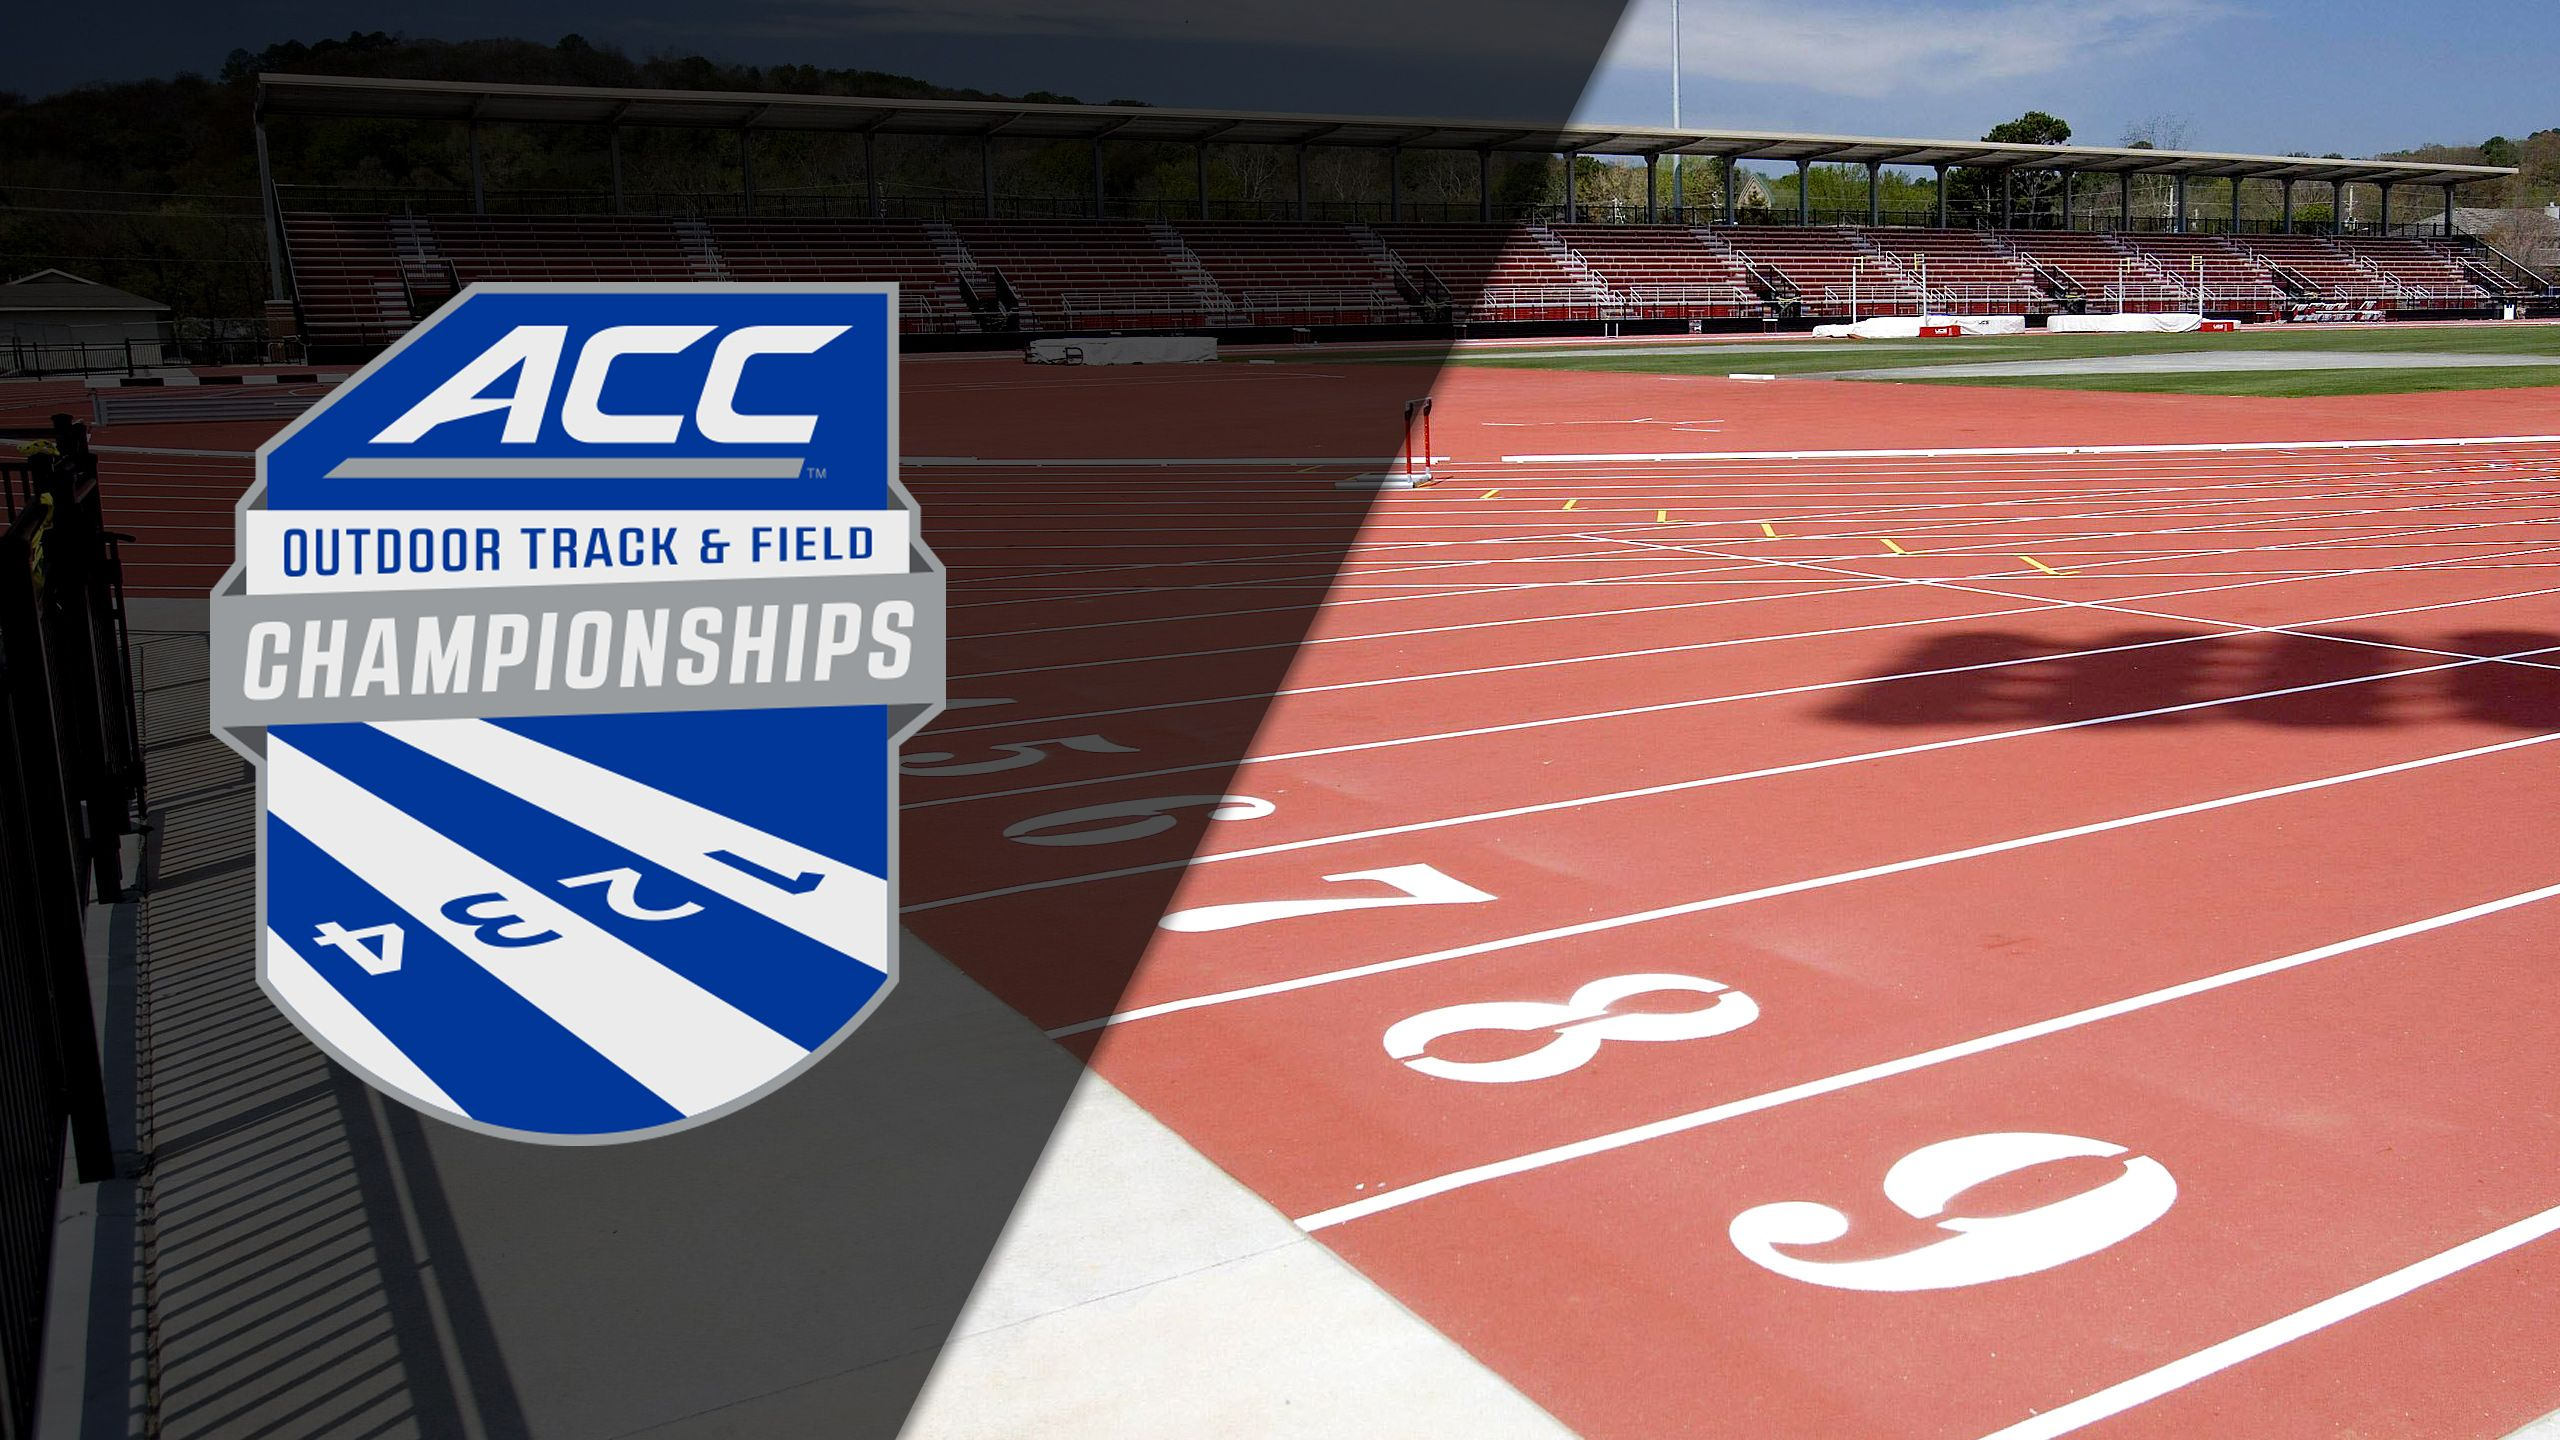 ACC Men's and Women's Outdoor Track & Field Championship